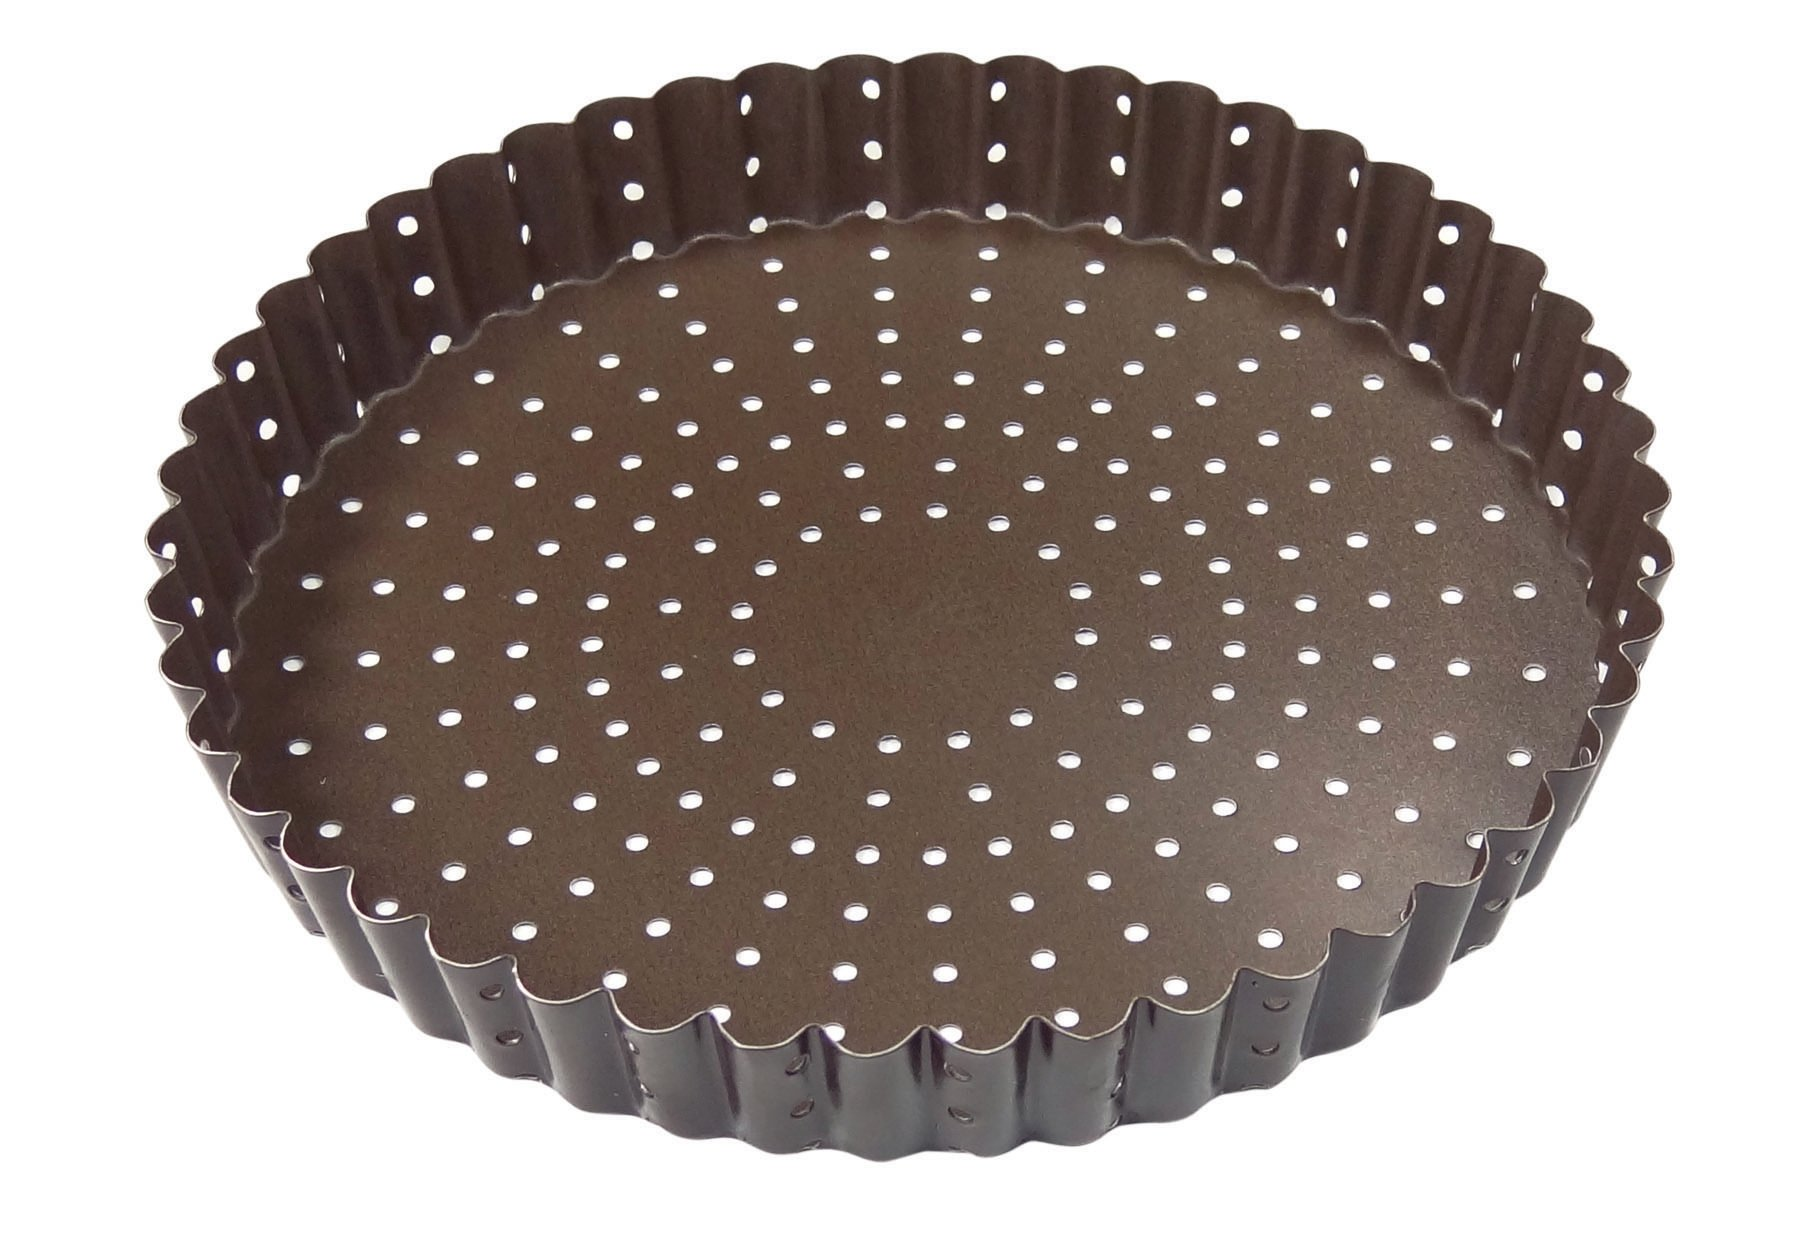 Paderno World Cuisine A4982316 Non-Stick Perforated Tart Pan, Brown by Paderno World Cuisine (Image #1)